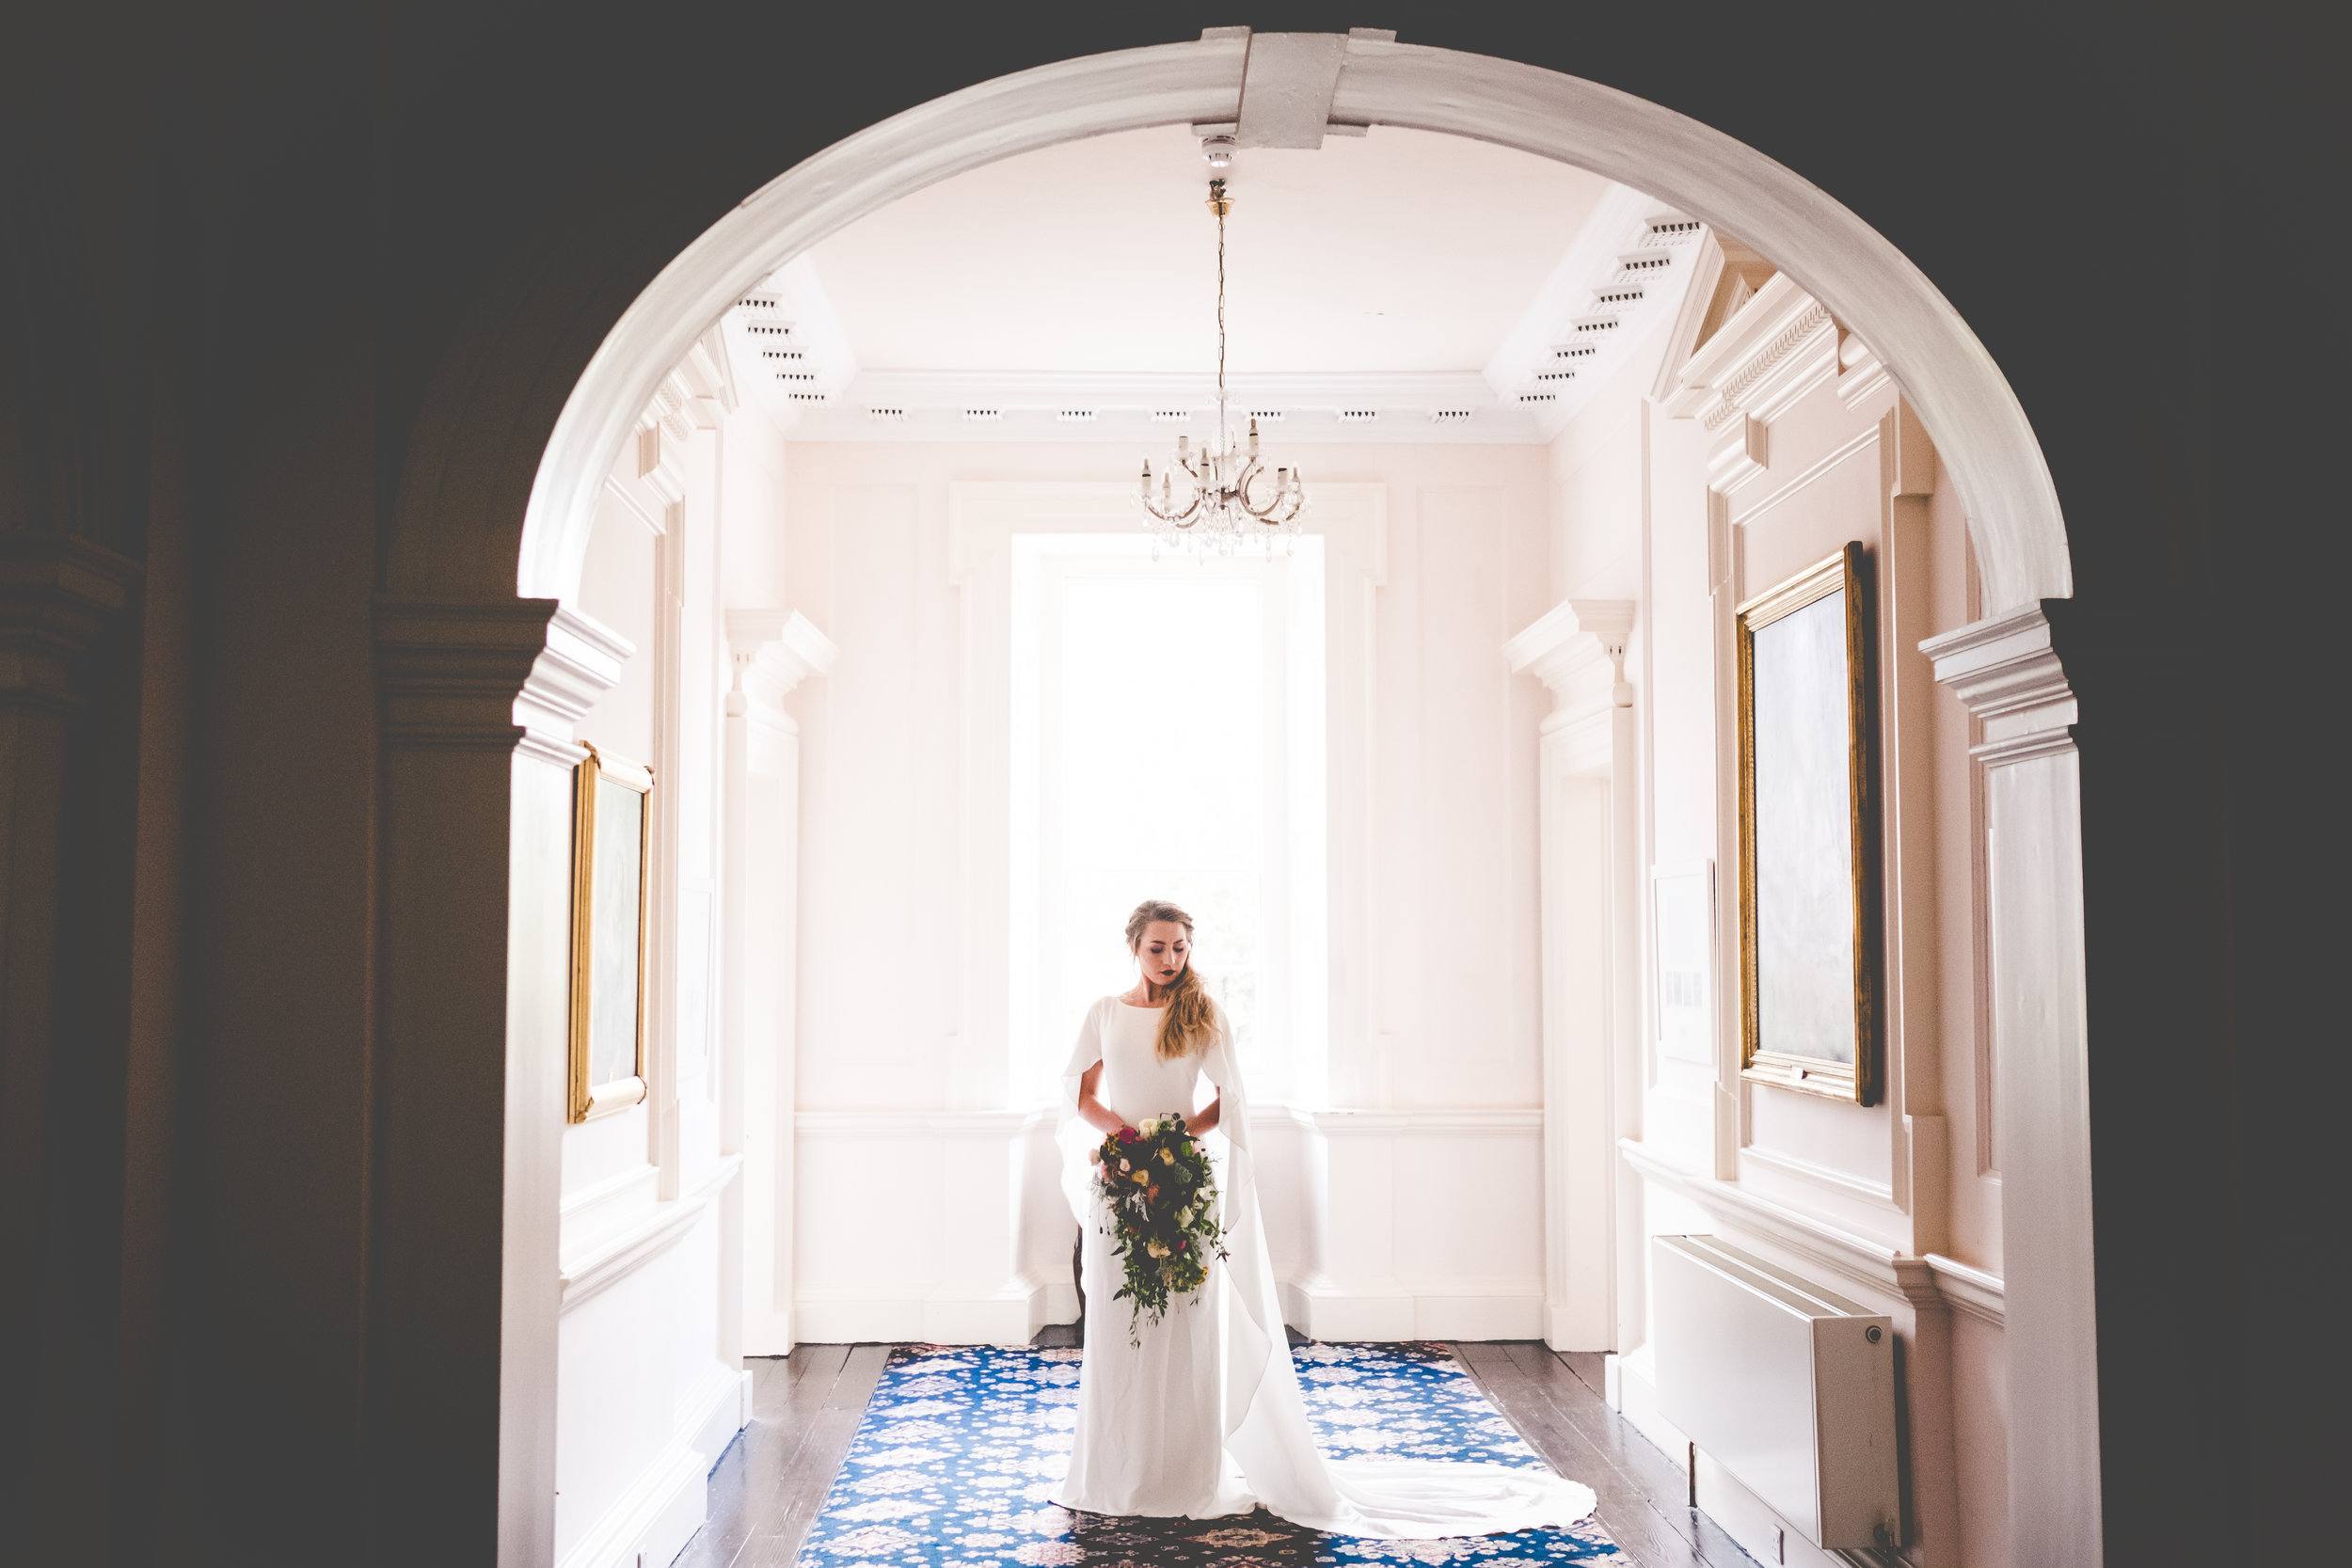 Nanteo's Styled Shoot - Images by Jon Turtle - Photographer-182.jpg